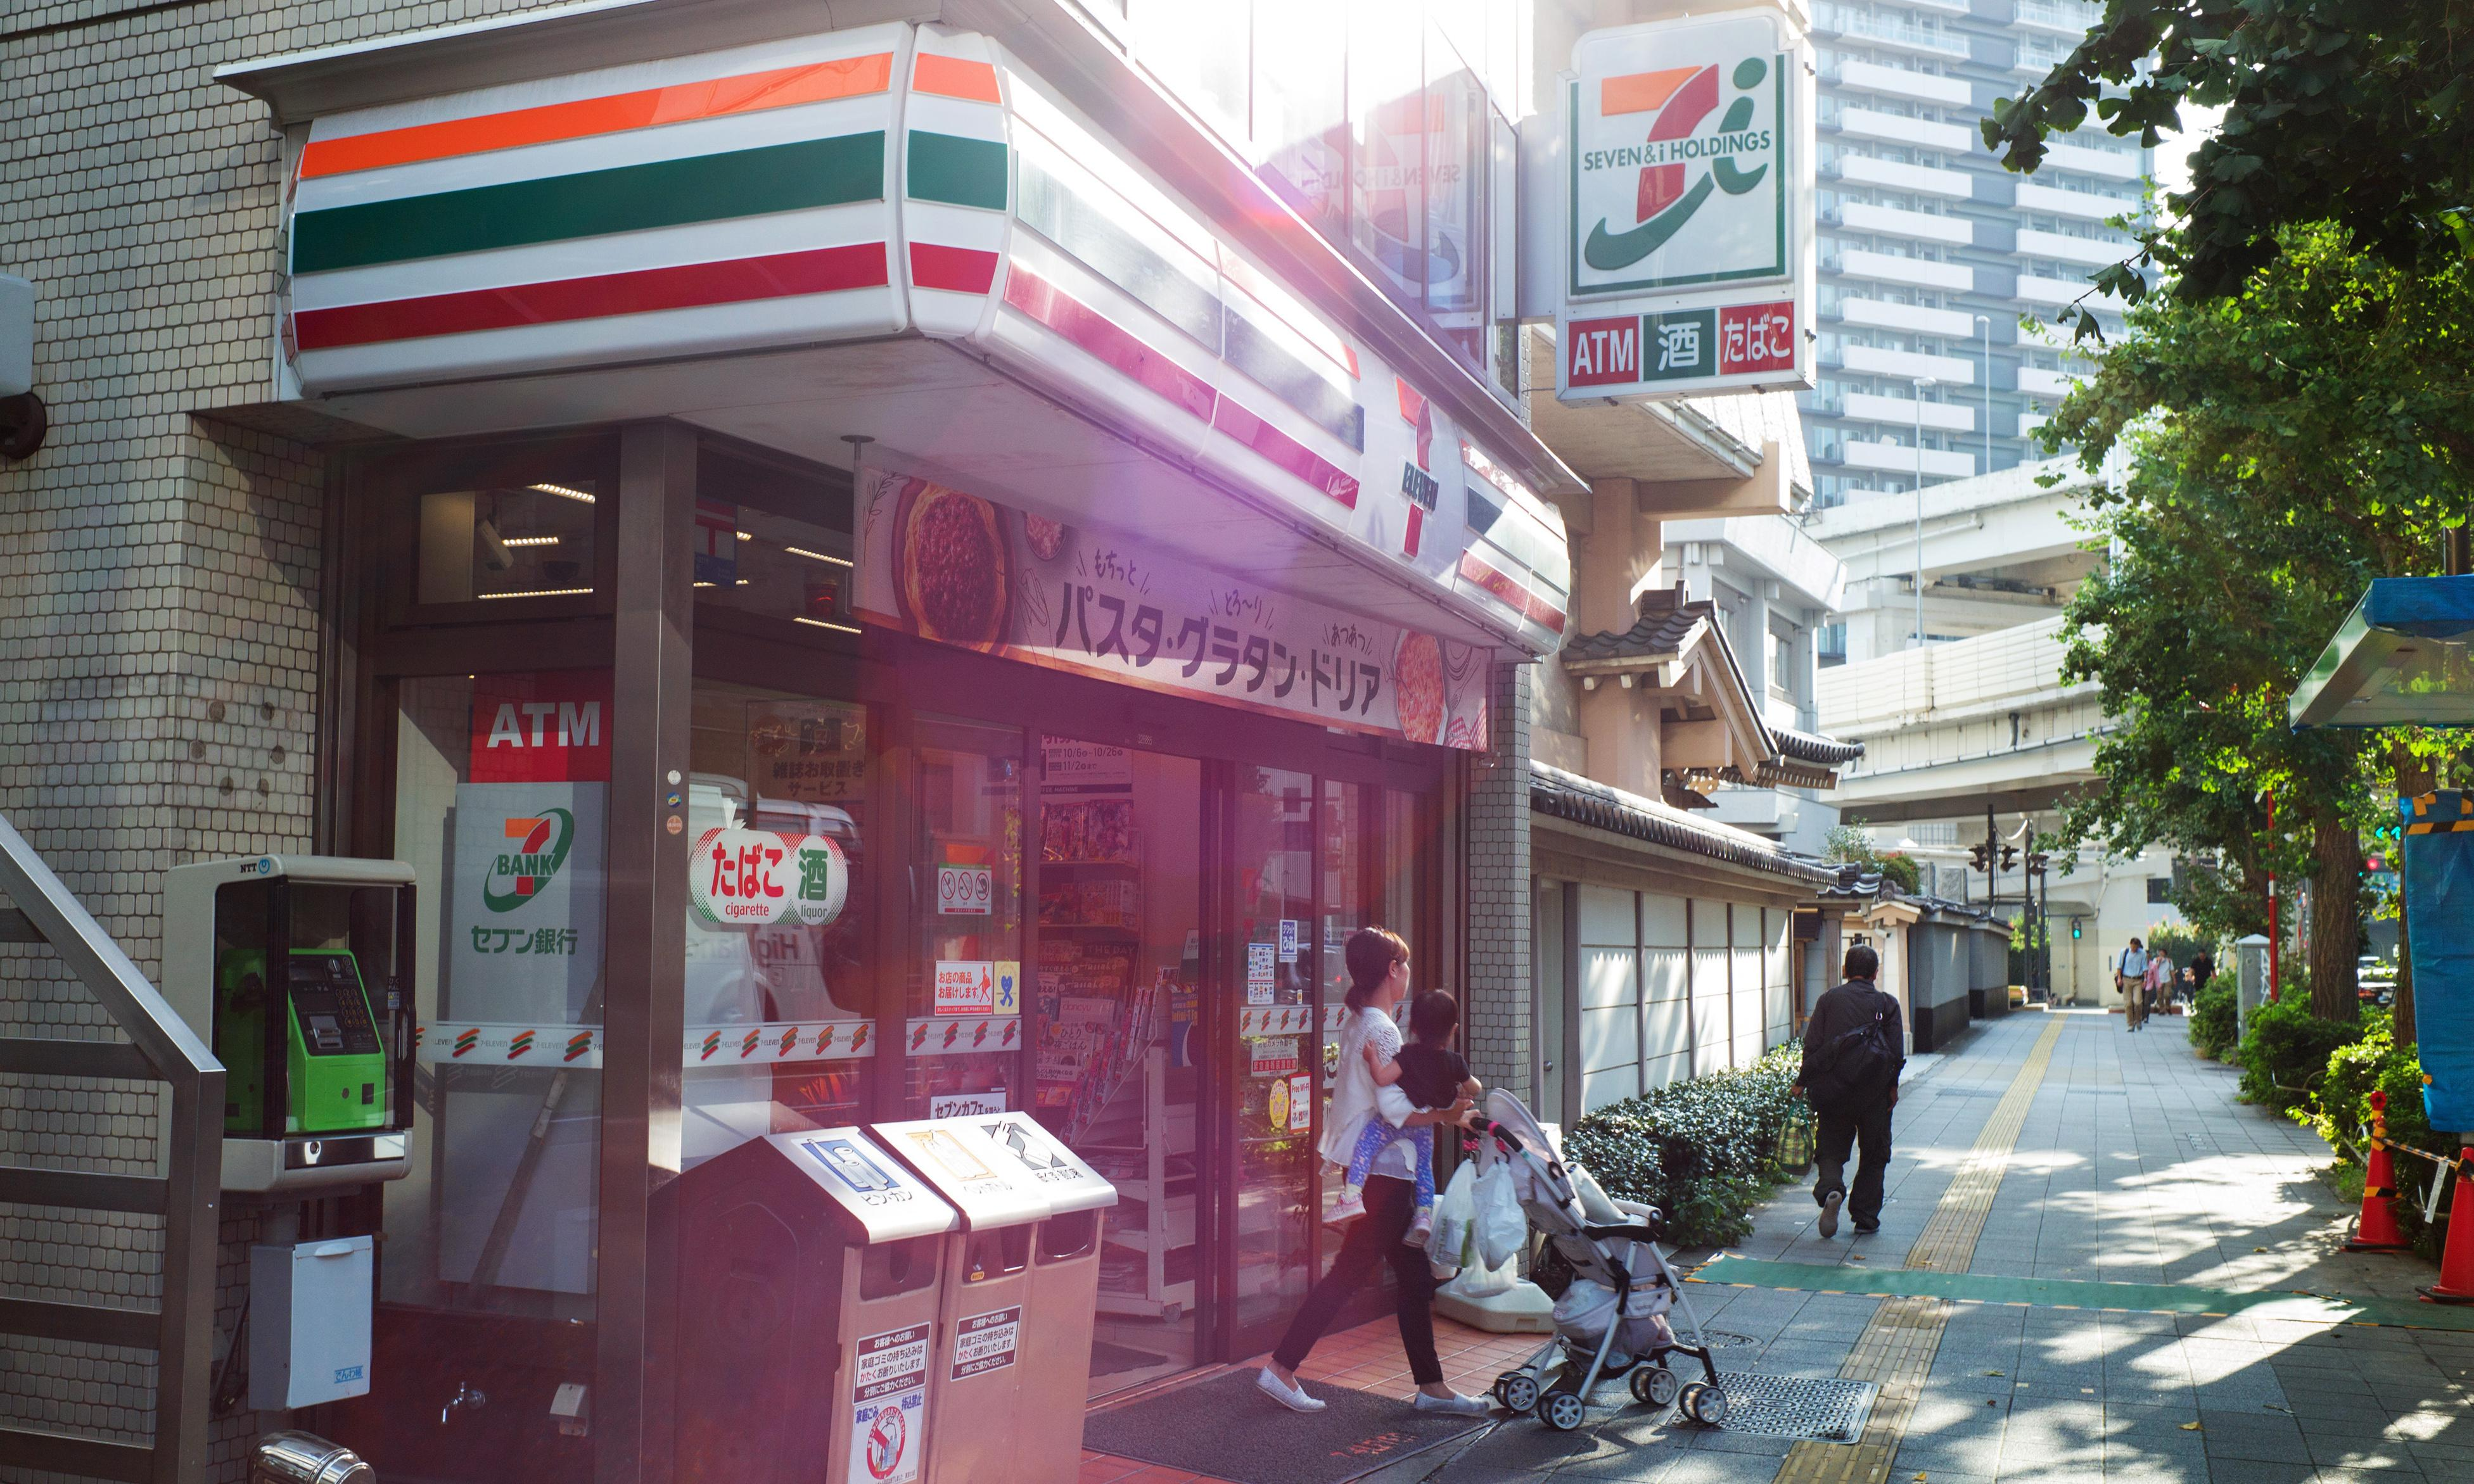 Japan's 7-Eleven bans pornographic magazines in run-up to Olympics